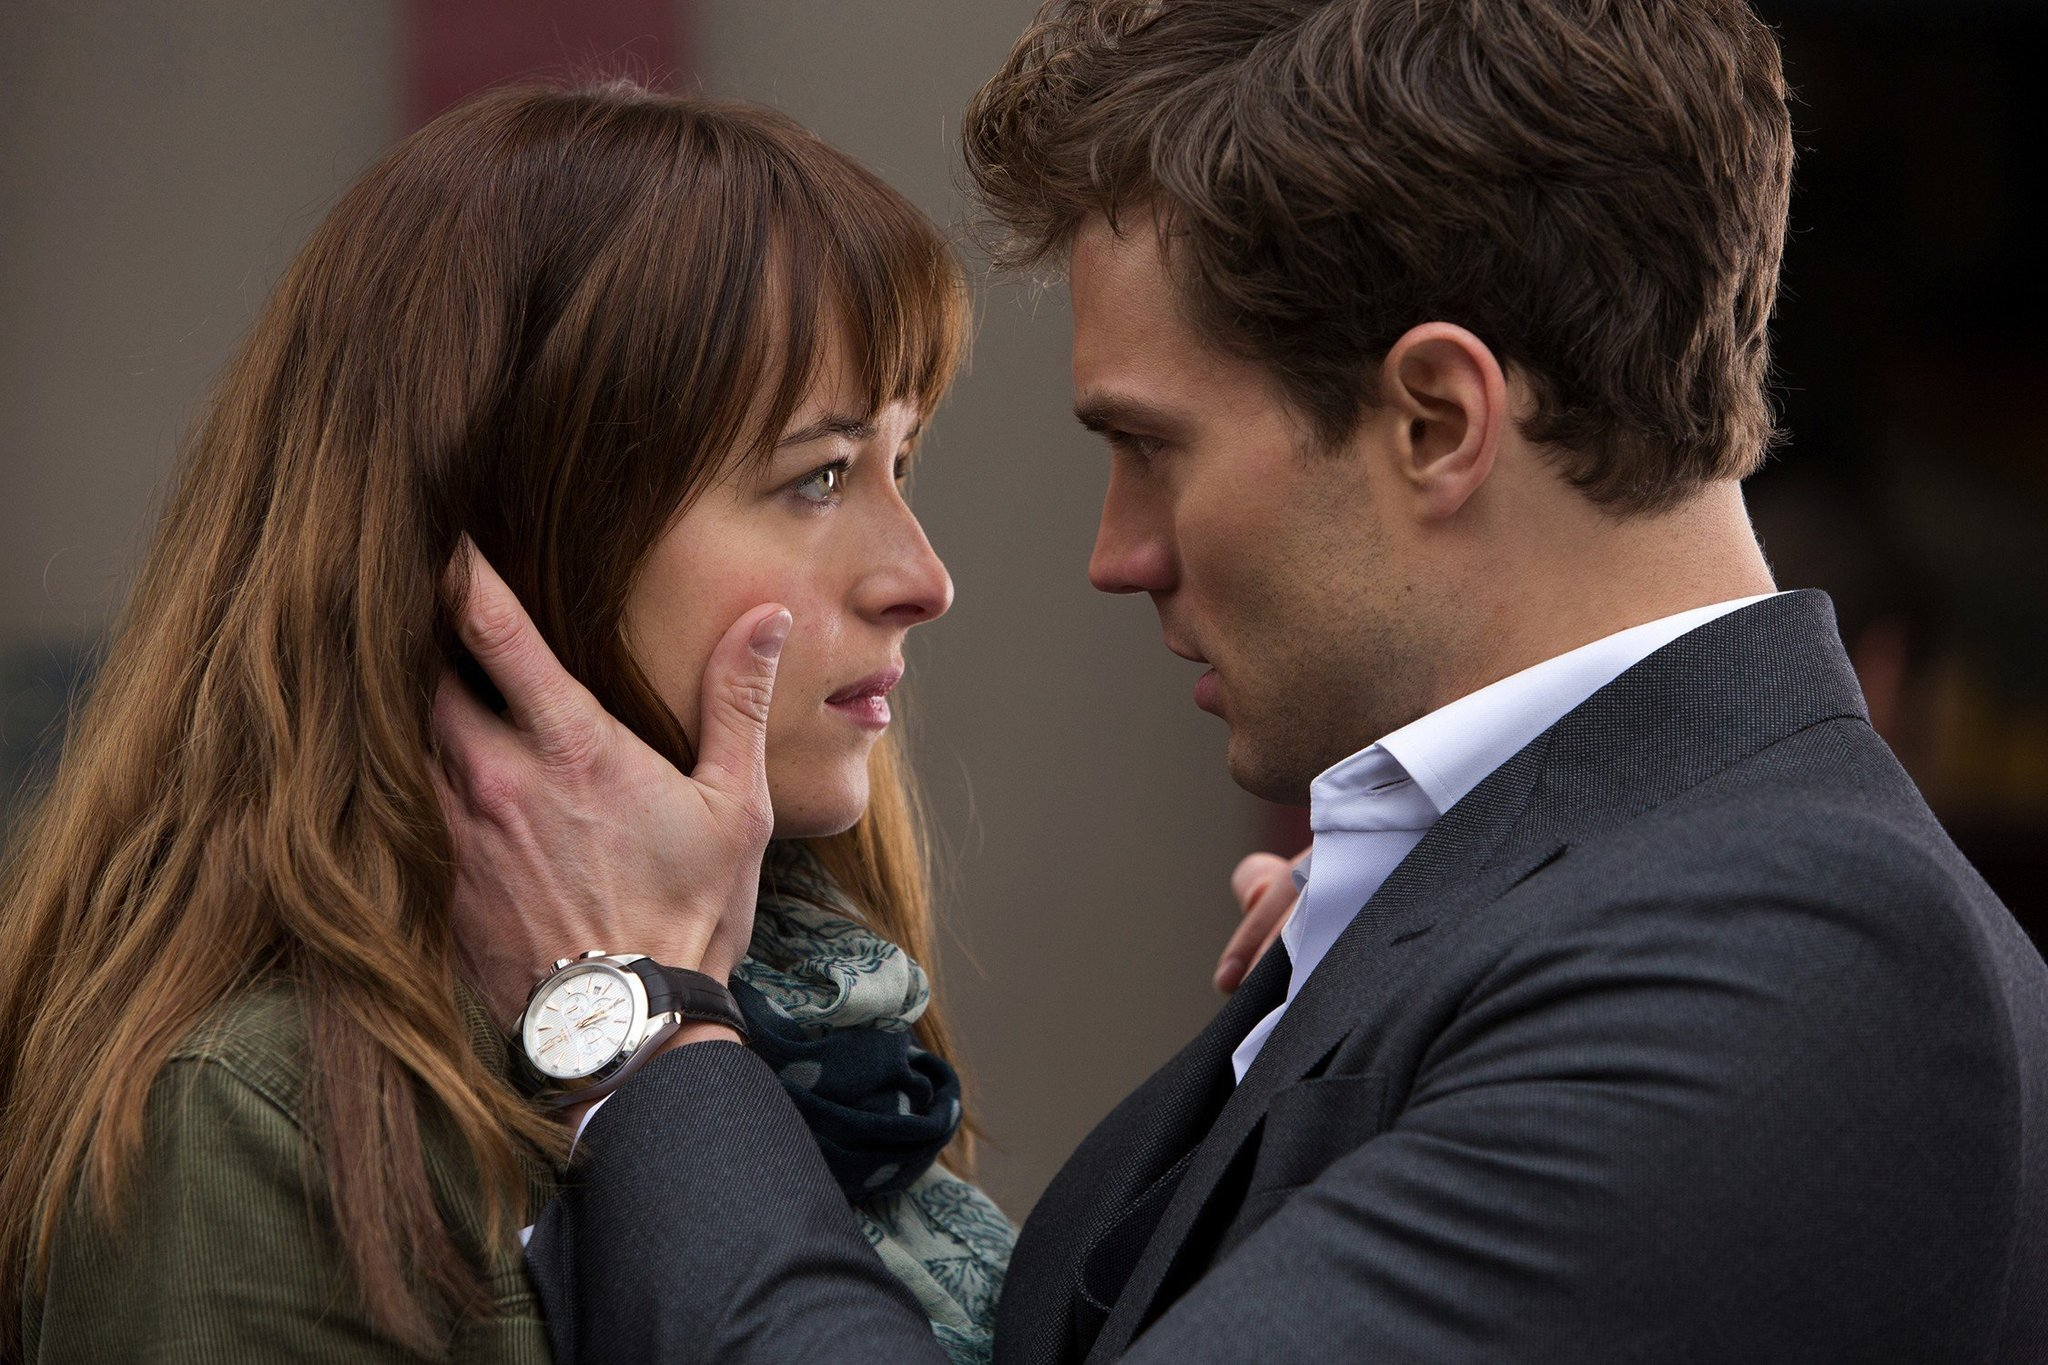 fifty shades of grey leading ticket sales on fandango